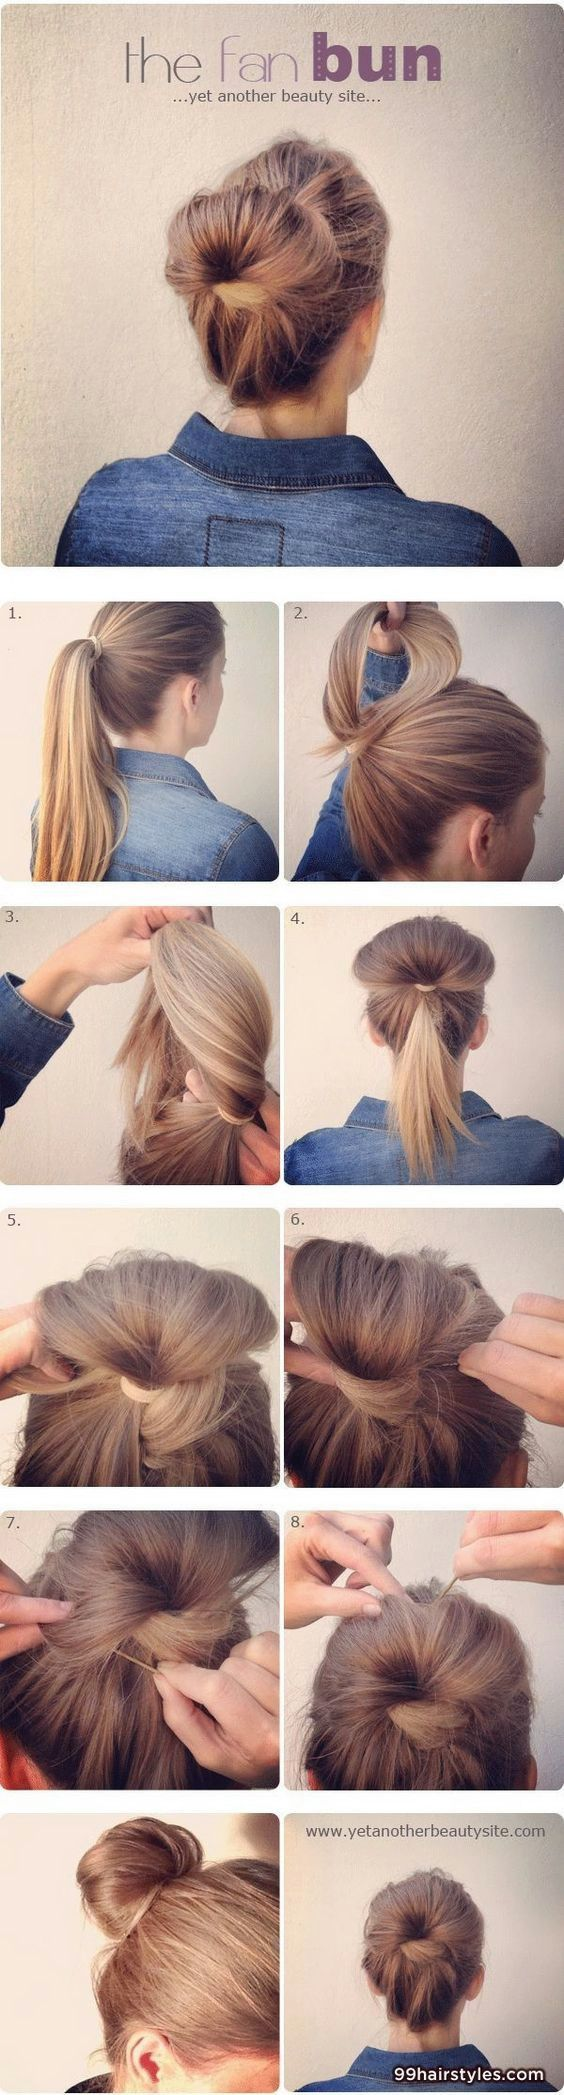 5 Minute Hairstyles For Girls 25 Best Ideas About 5 Minute Hairstyles On Pinterest Beach Hair